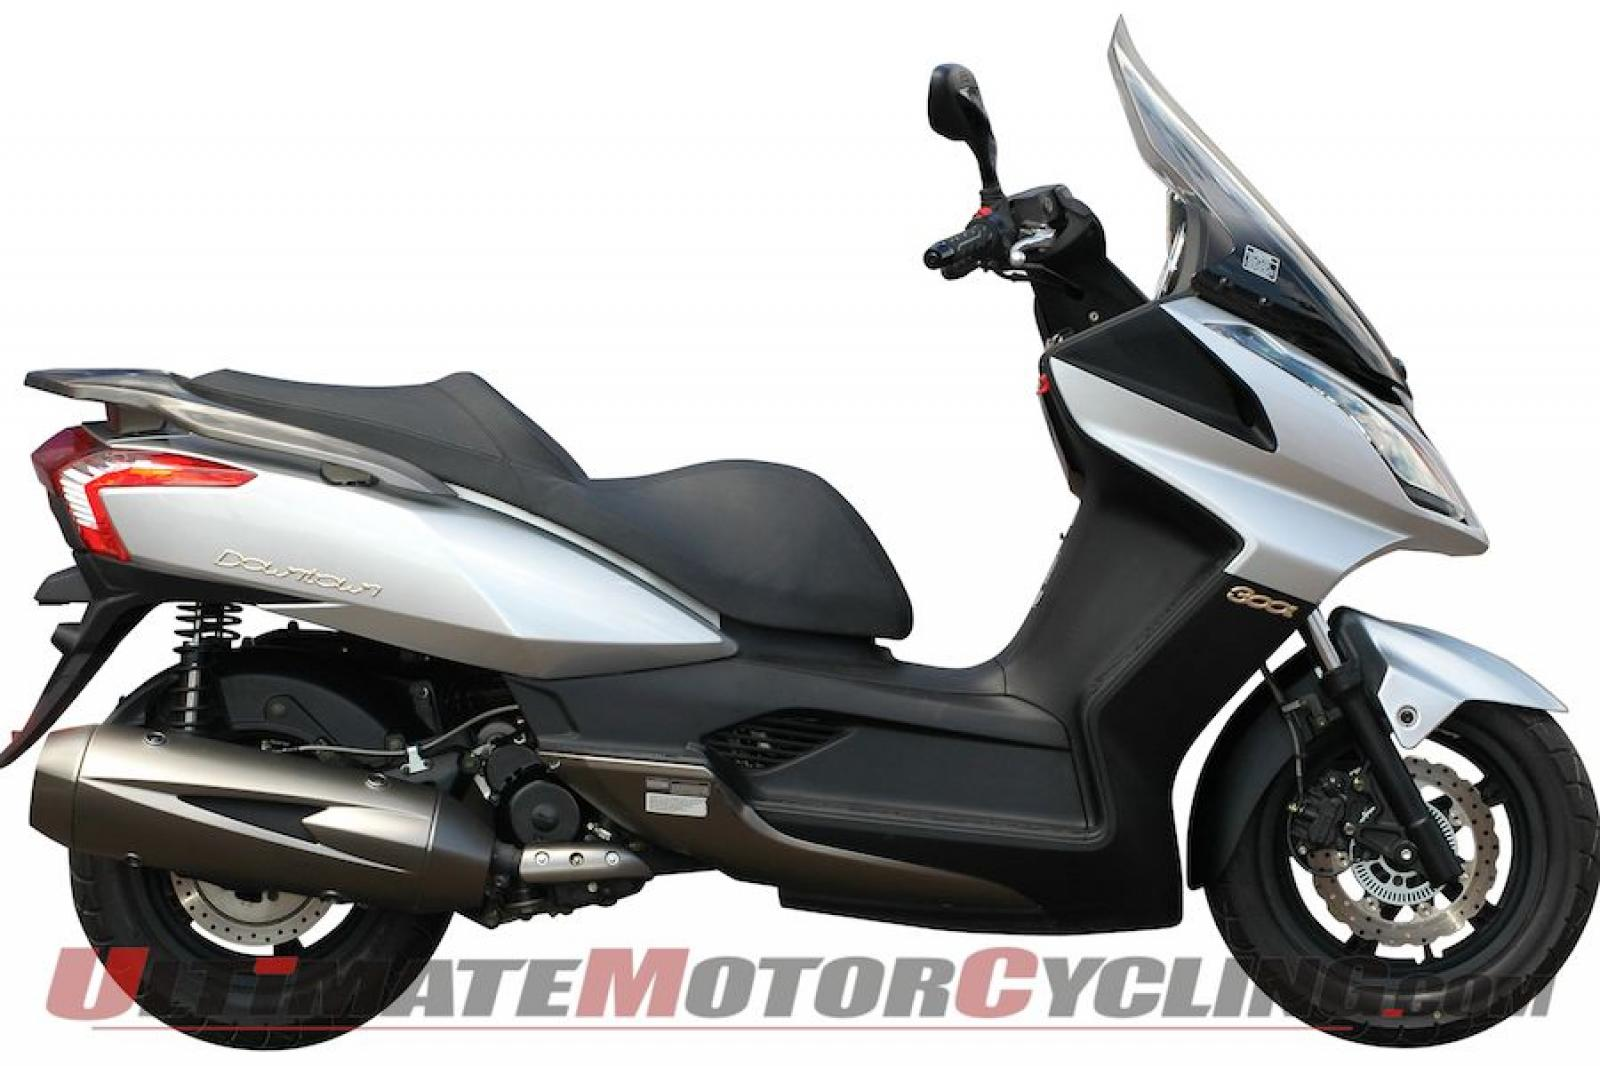 Kymco Heroism 150 1999 images #100671